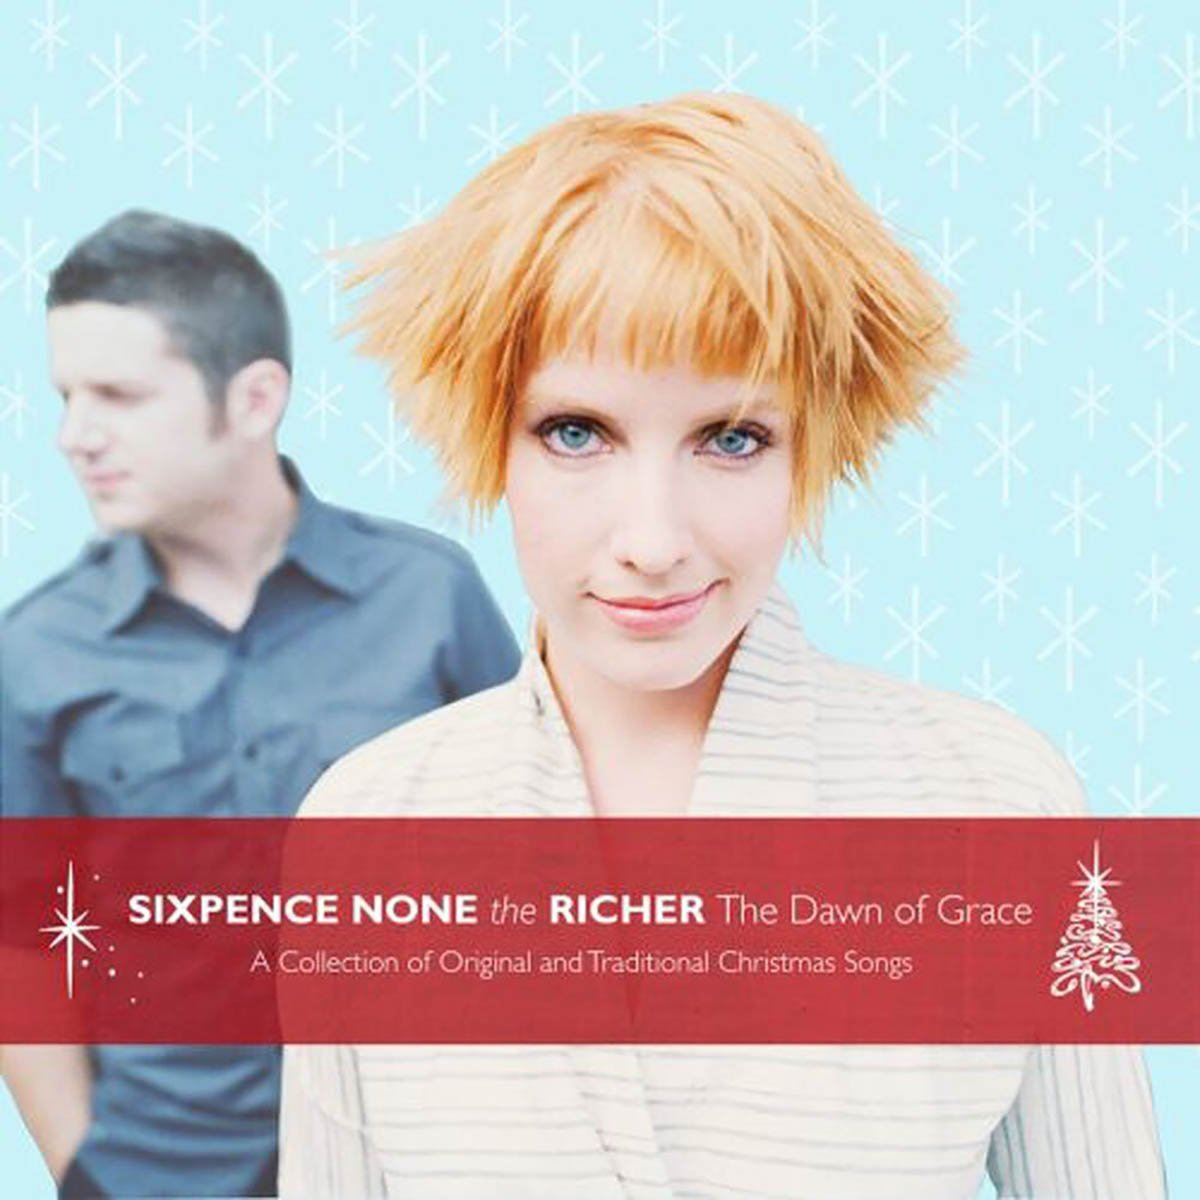 Sixpence None the Richer, The Dawn of Grace